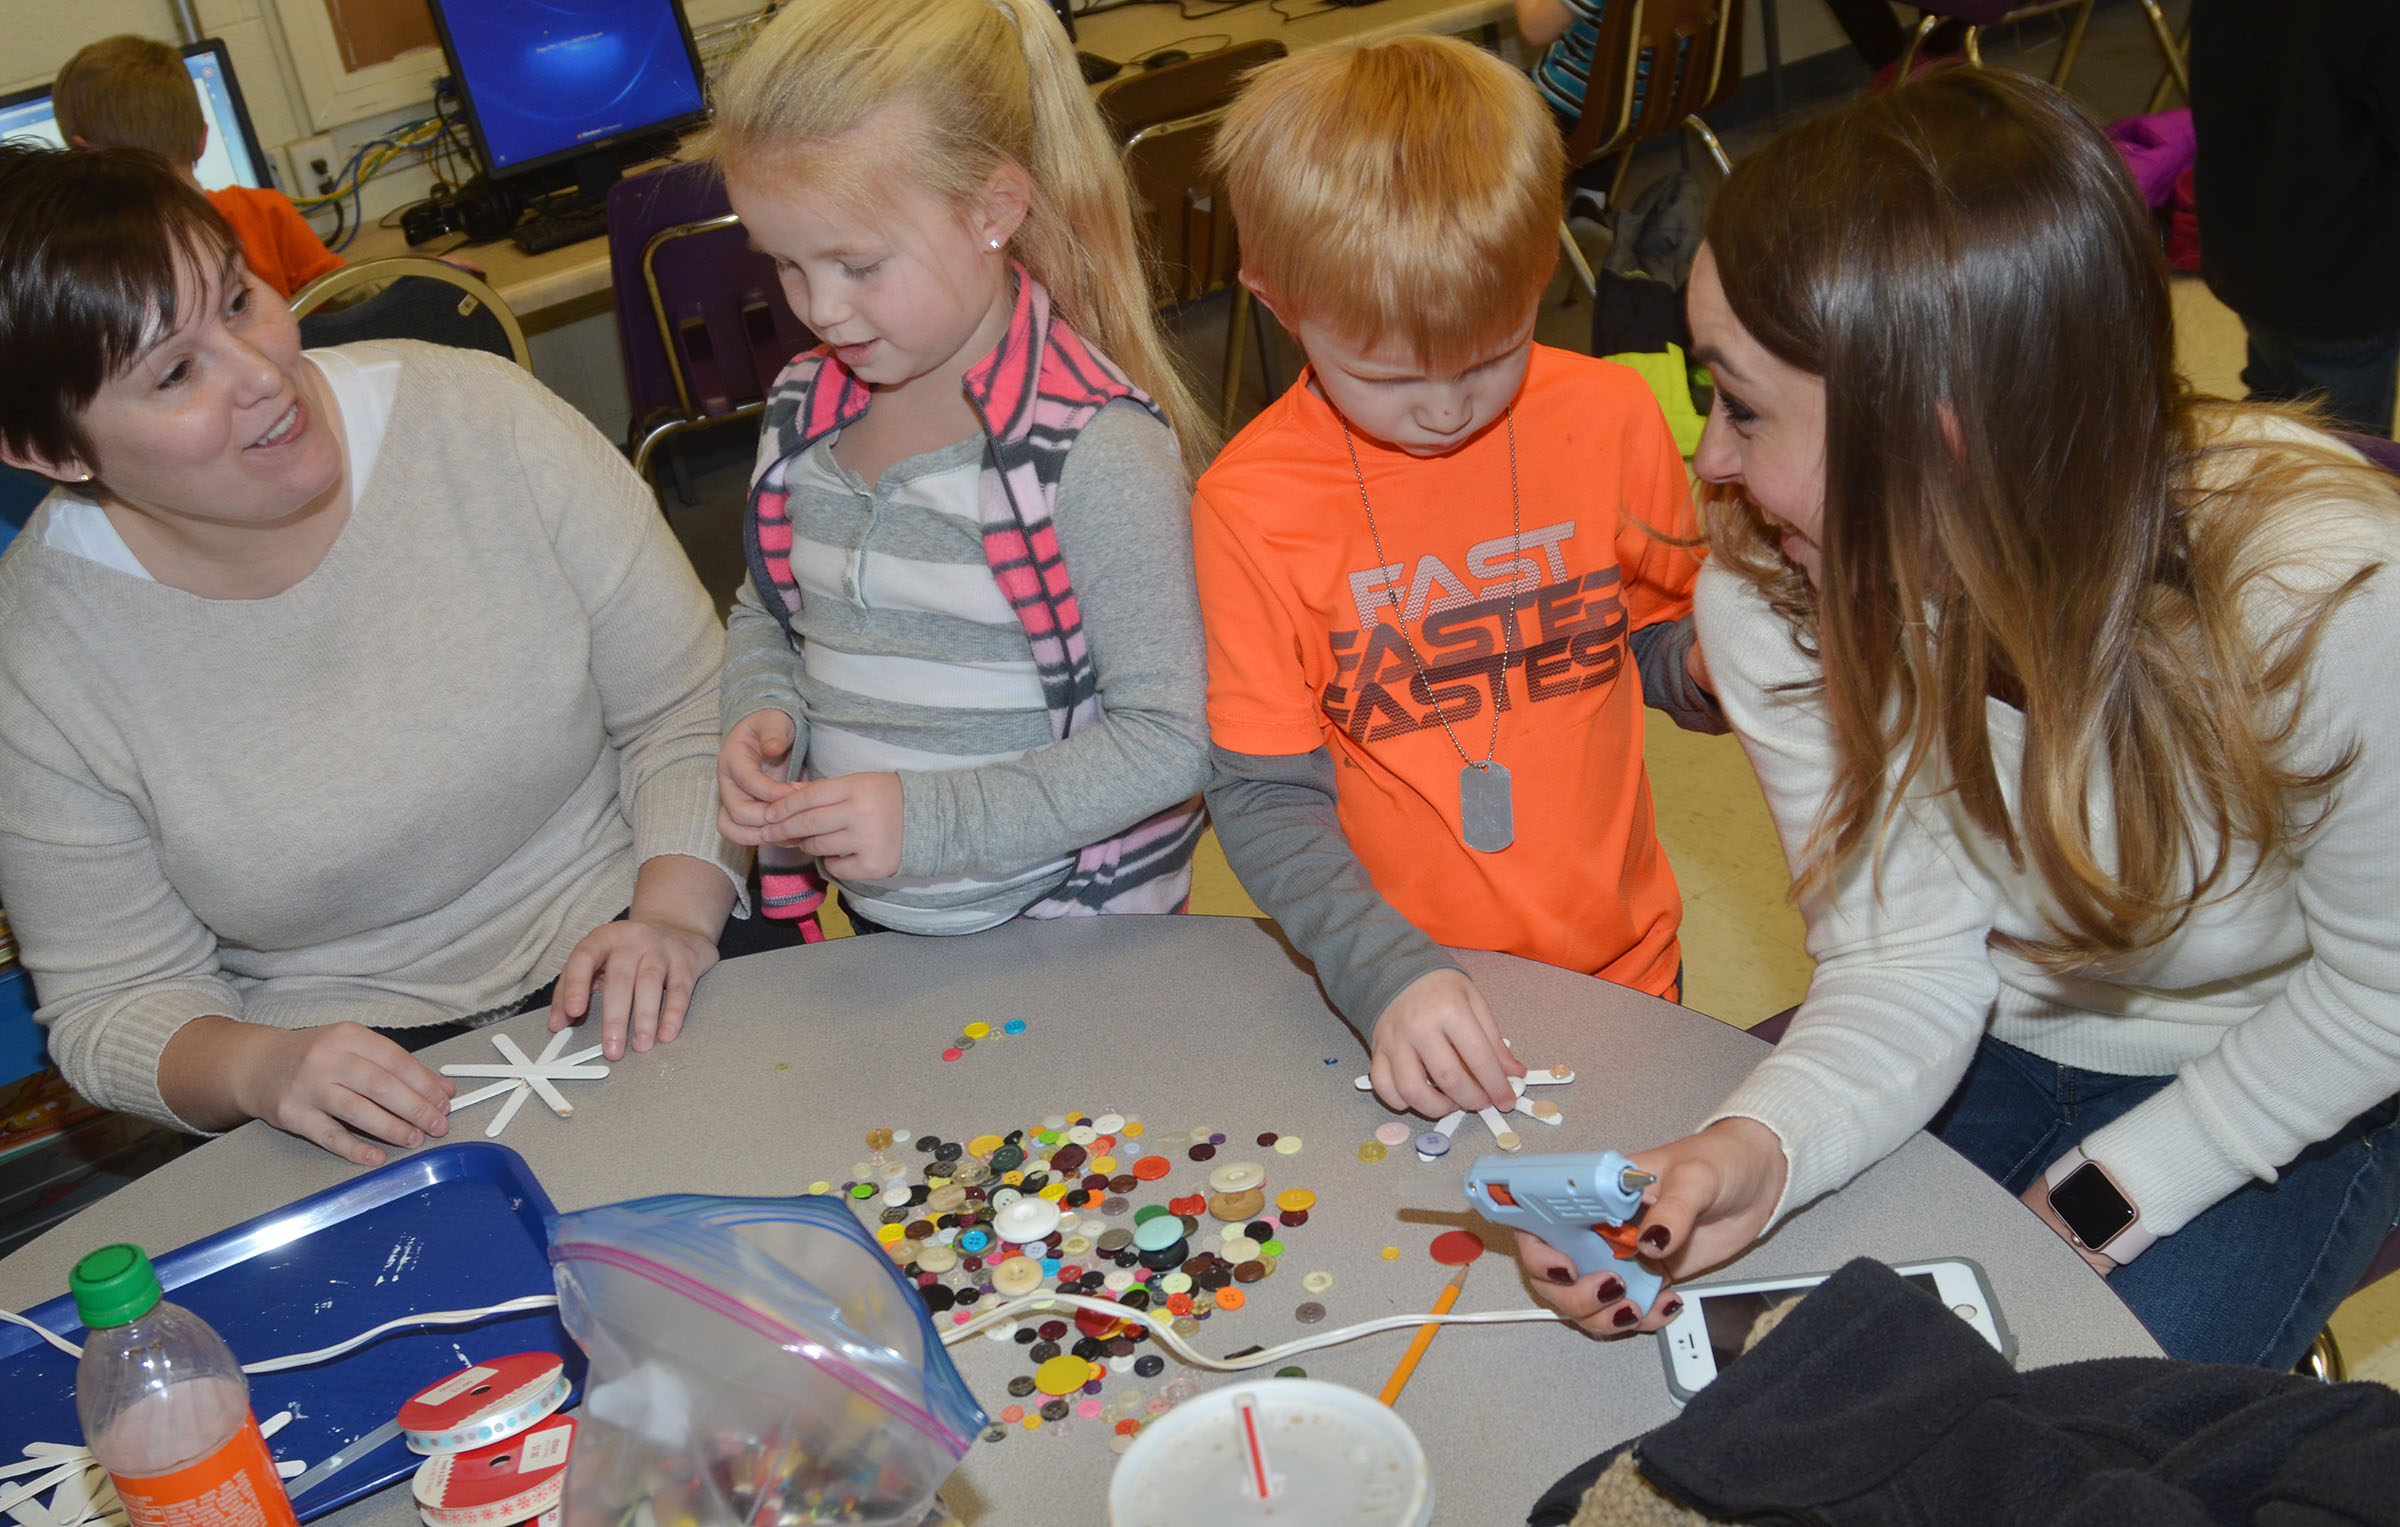 CES Wings Express Director Amanda Barnett, at left, and Campbellsville University education student Abi Dean help kindergarteners Lillie Judd and Jayden Maupin glue buttons on their snowflakes.